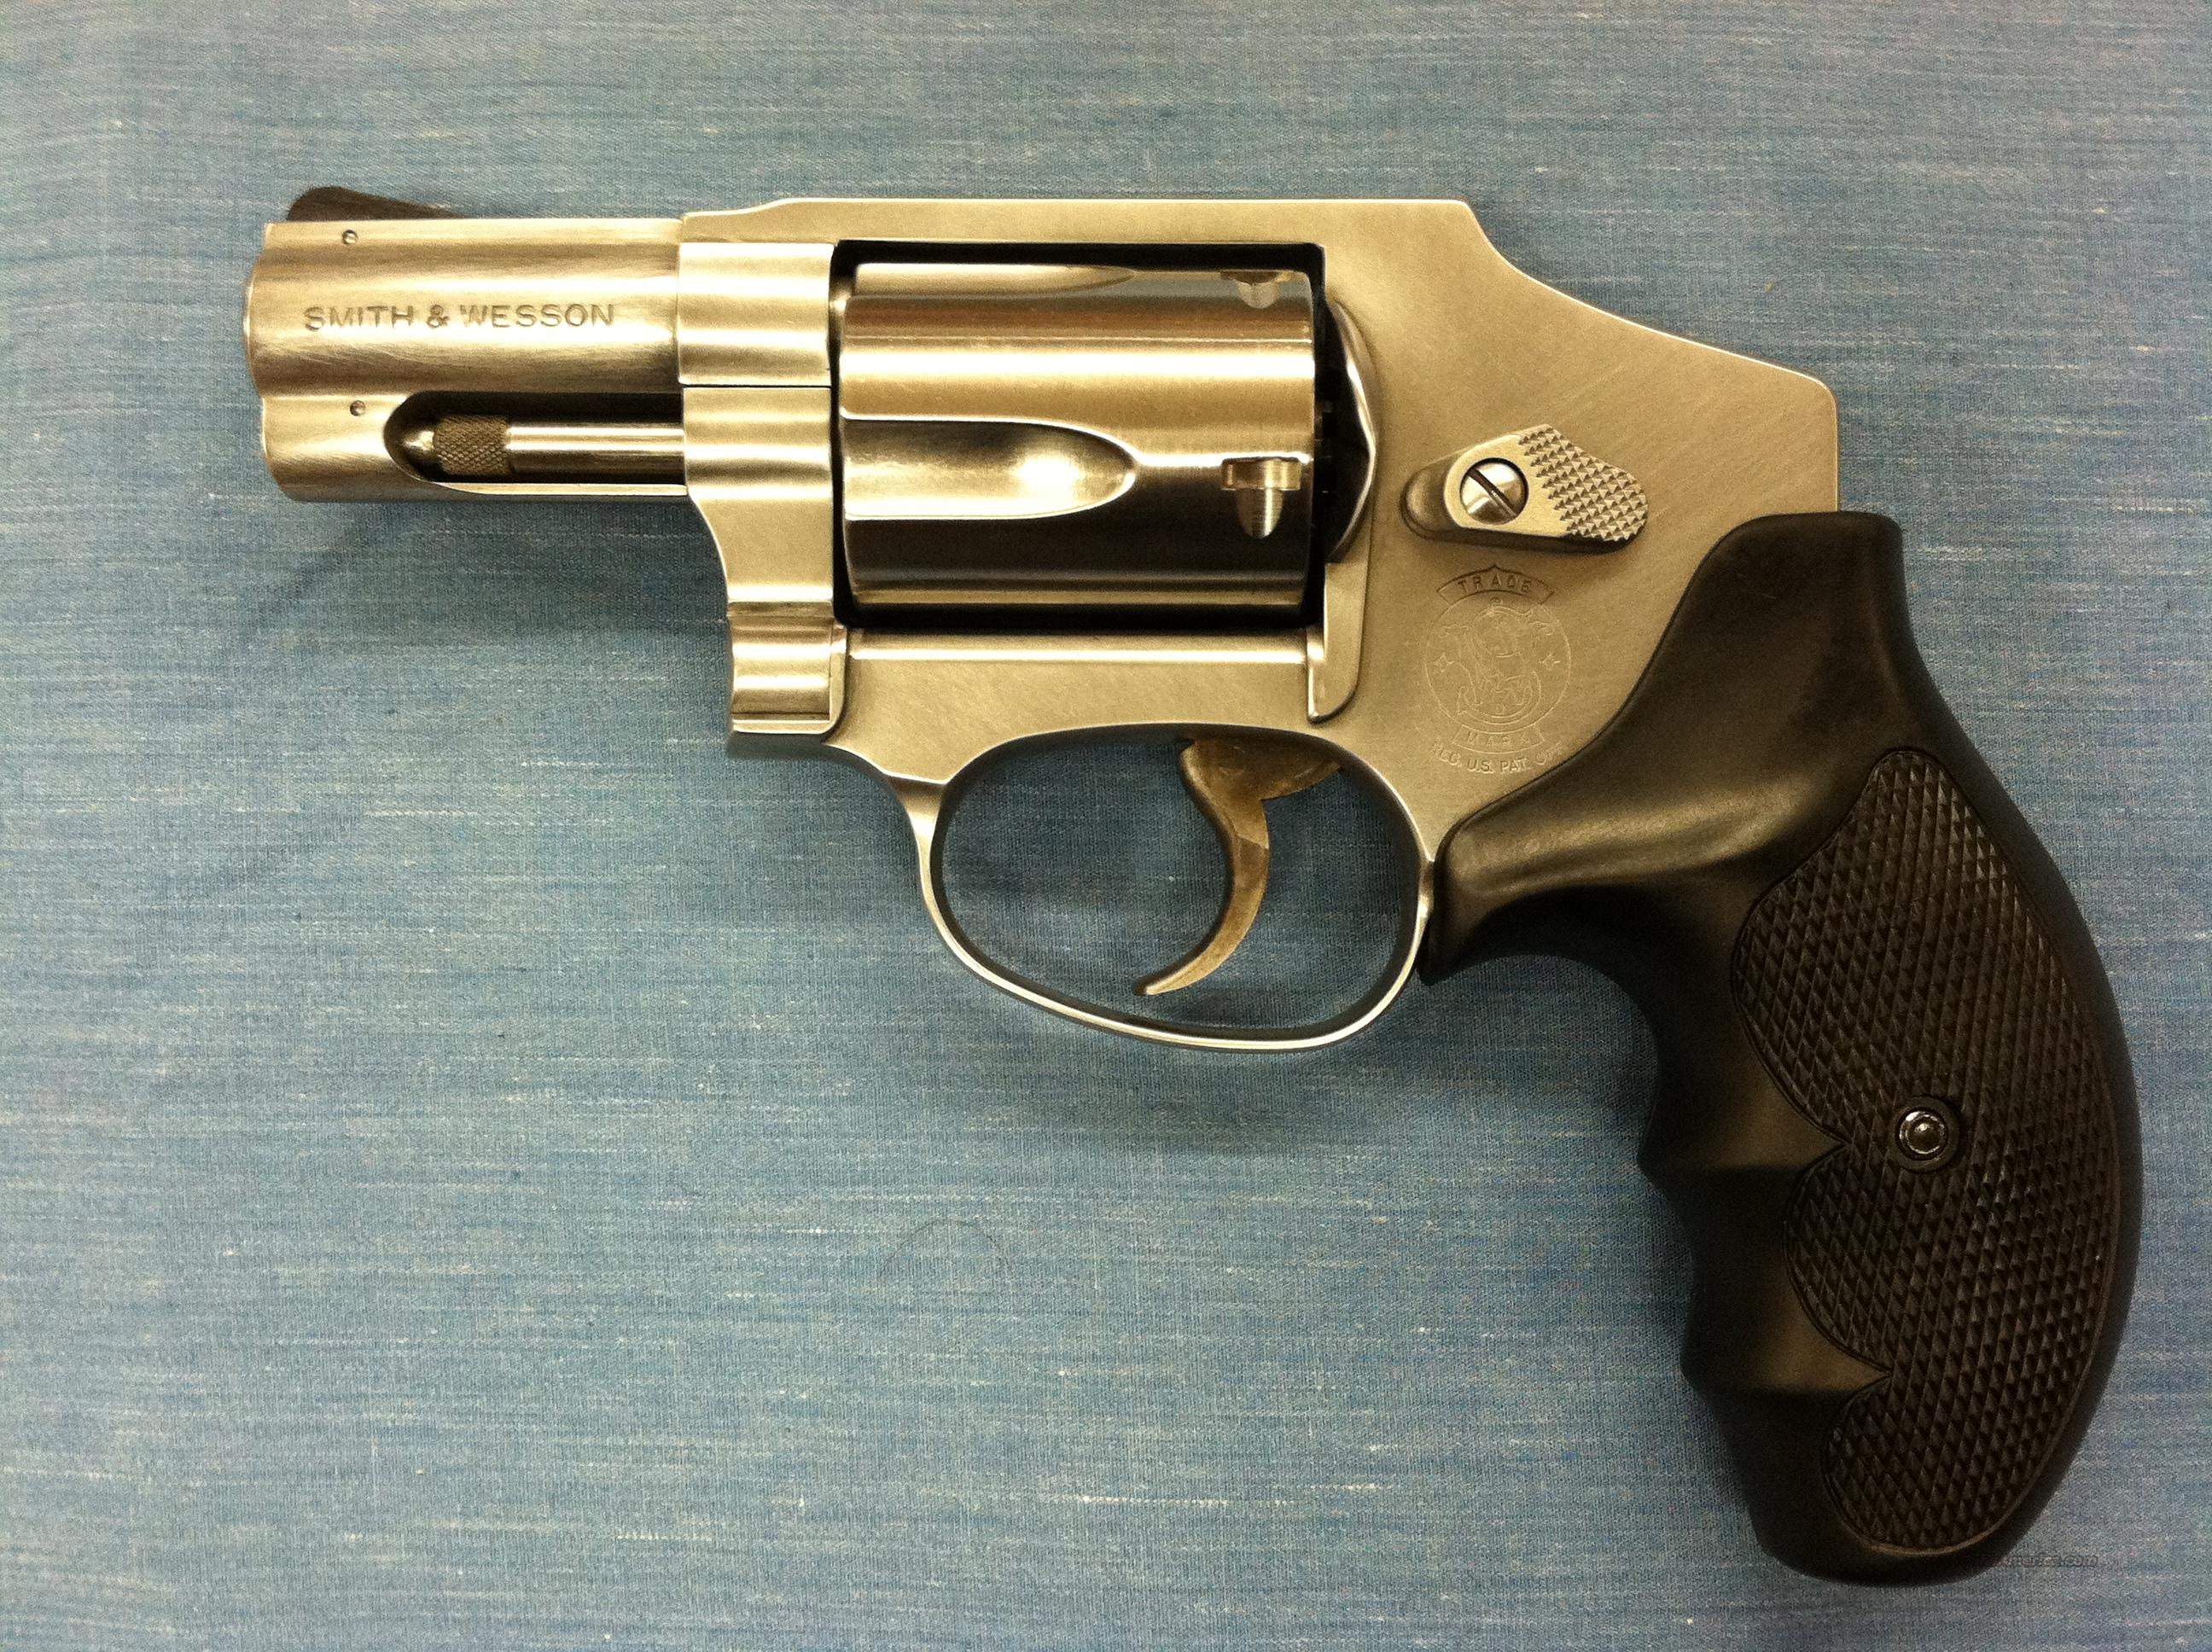 Smith & Wesson Model 640 Centennial .357 Magnum  Guns > Pistols > Smith & Wesson Revolvers > Pocket Pistols